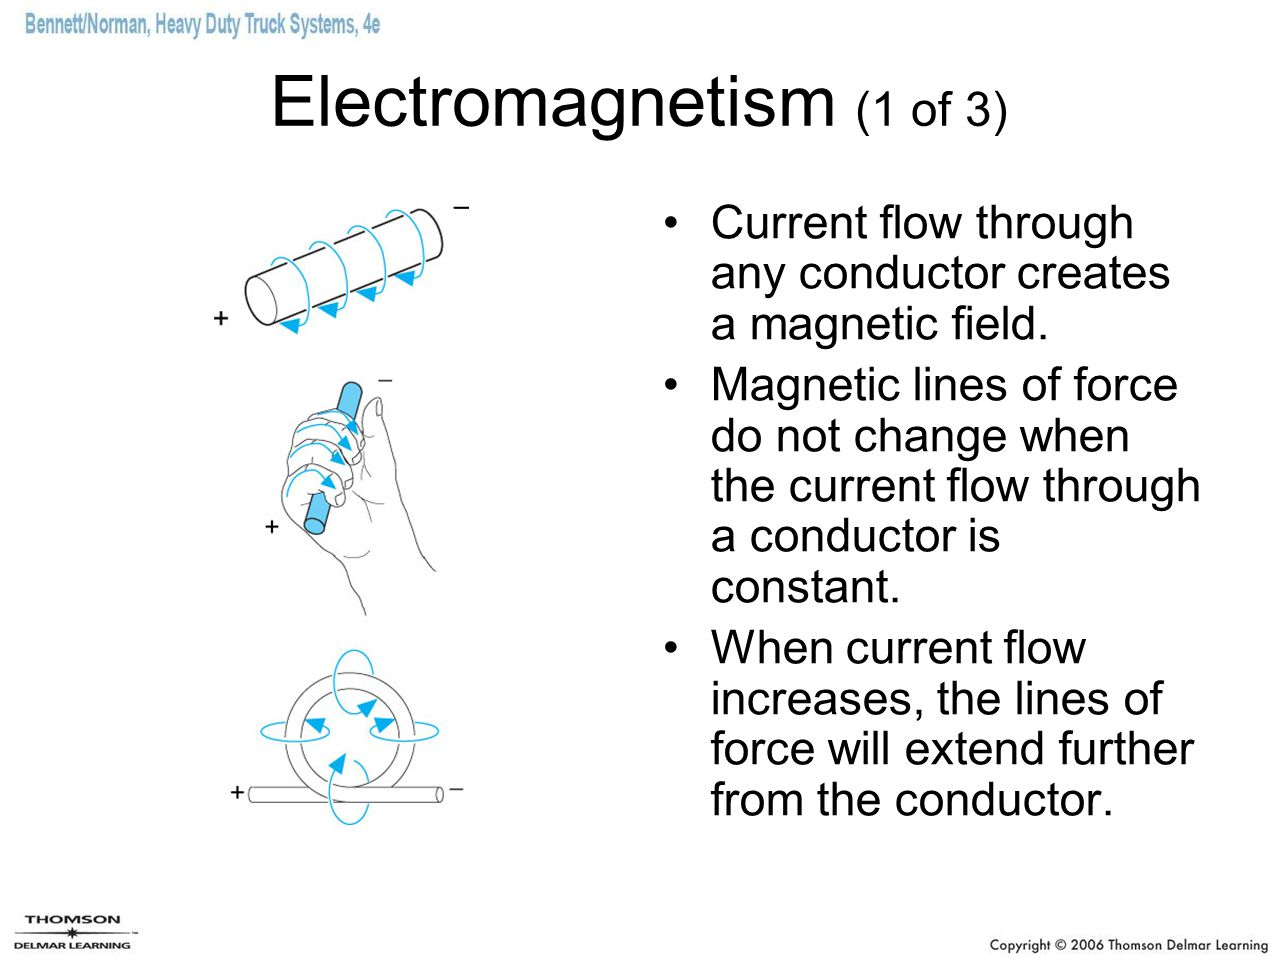 Electromagnetism (1 of 3) Current flow through any conductor creates a magnetic field.